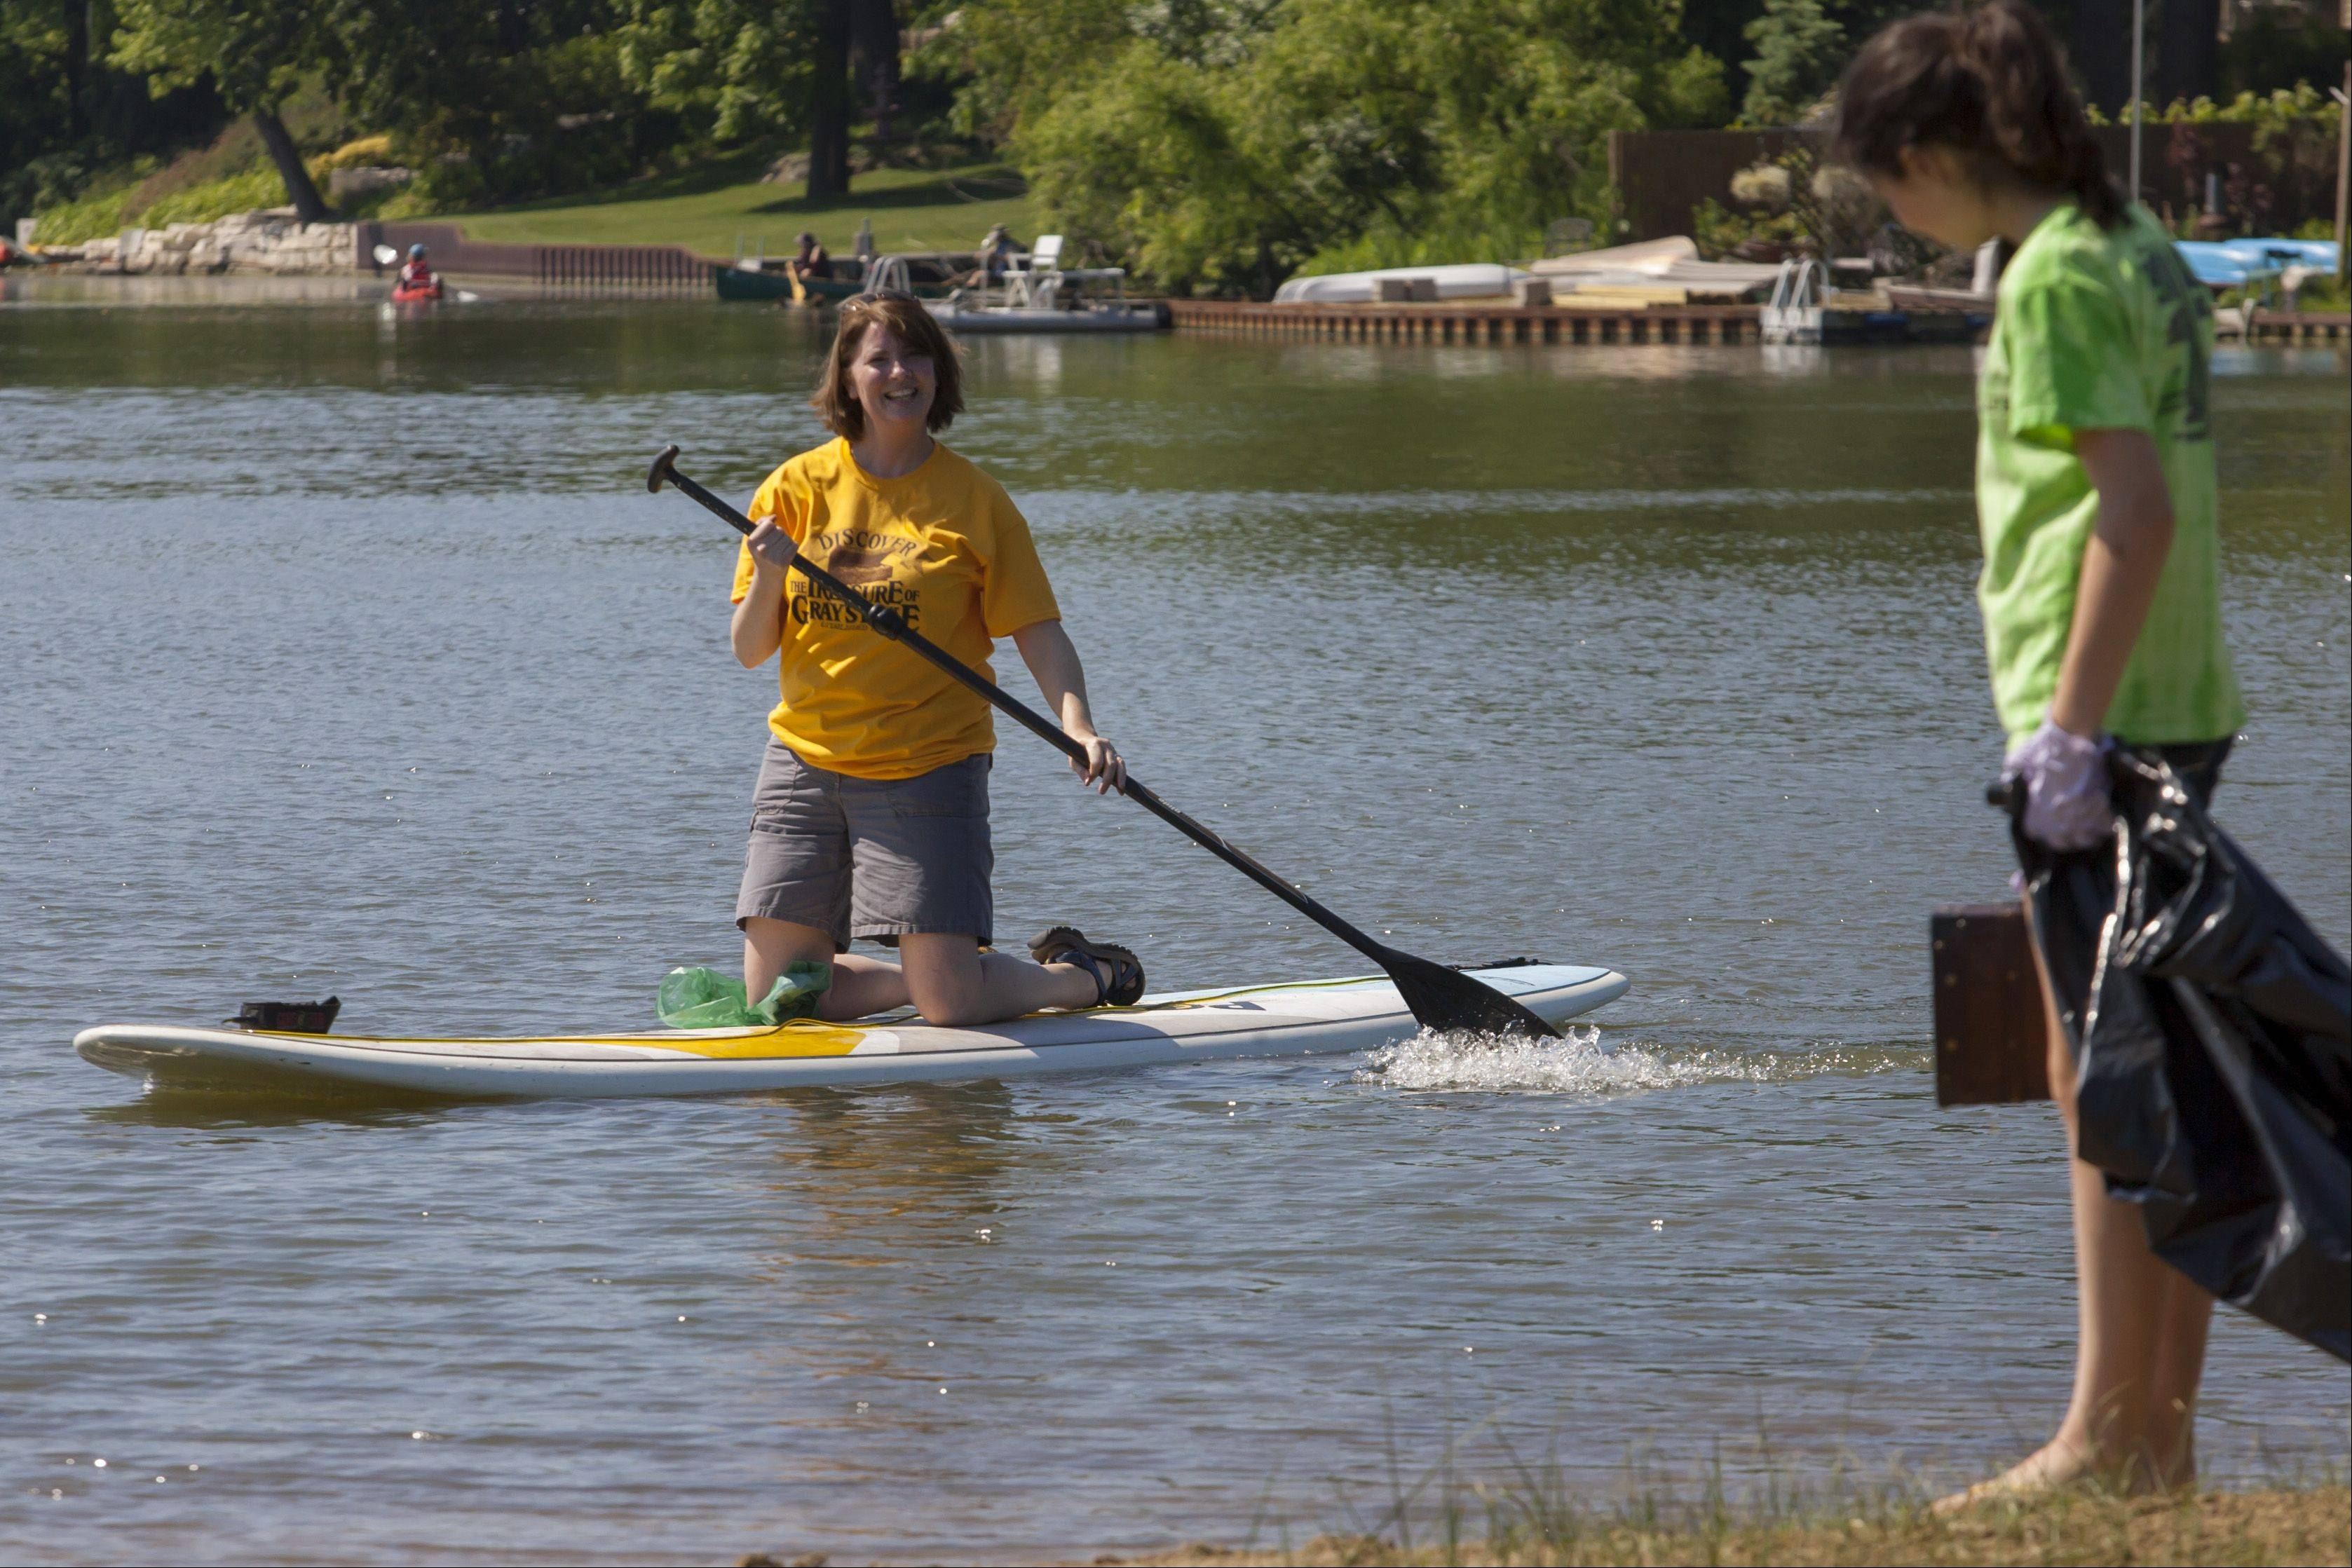 During last year's Grays Lake shoreline cleanup and treasure hunt, Annie Caliendo lands her paddle board so that her daughter, Hope, can have a turn. Hope found one of five treasure chests hidden around the lake as a prize for helping reduce trash.